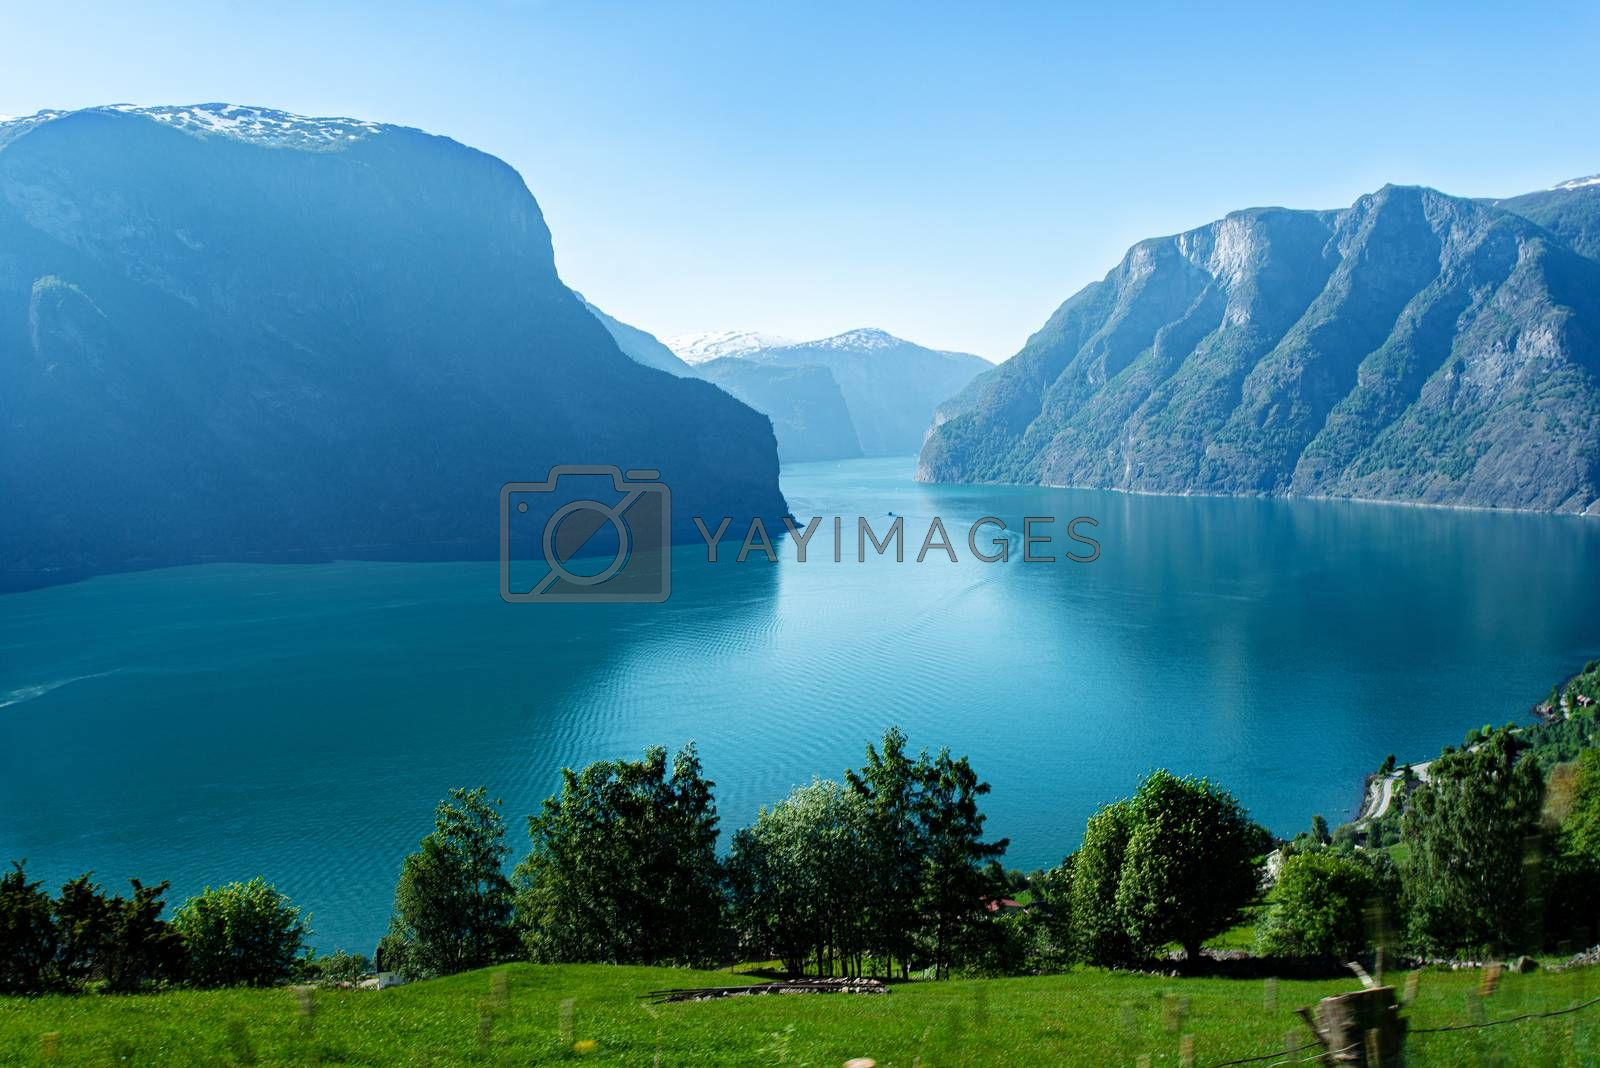 Norway Sognefjord at summer. Sunny day, landscape with mountain, fjord, forest